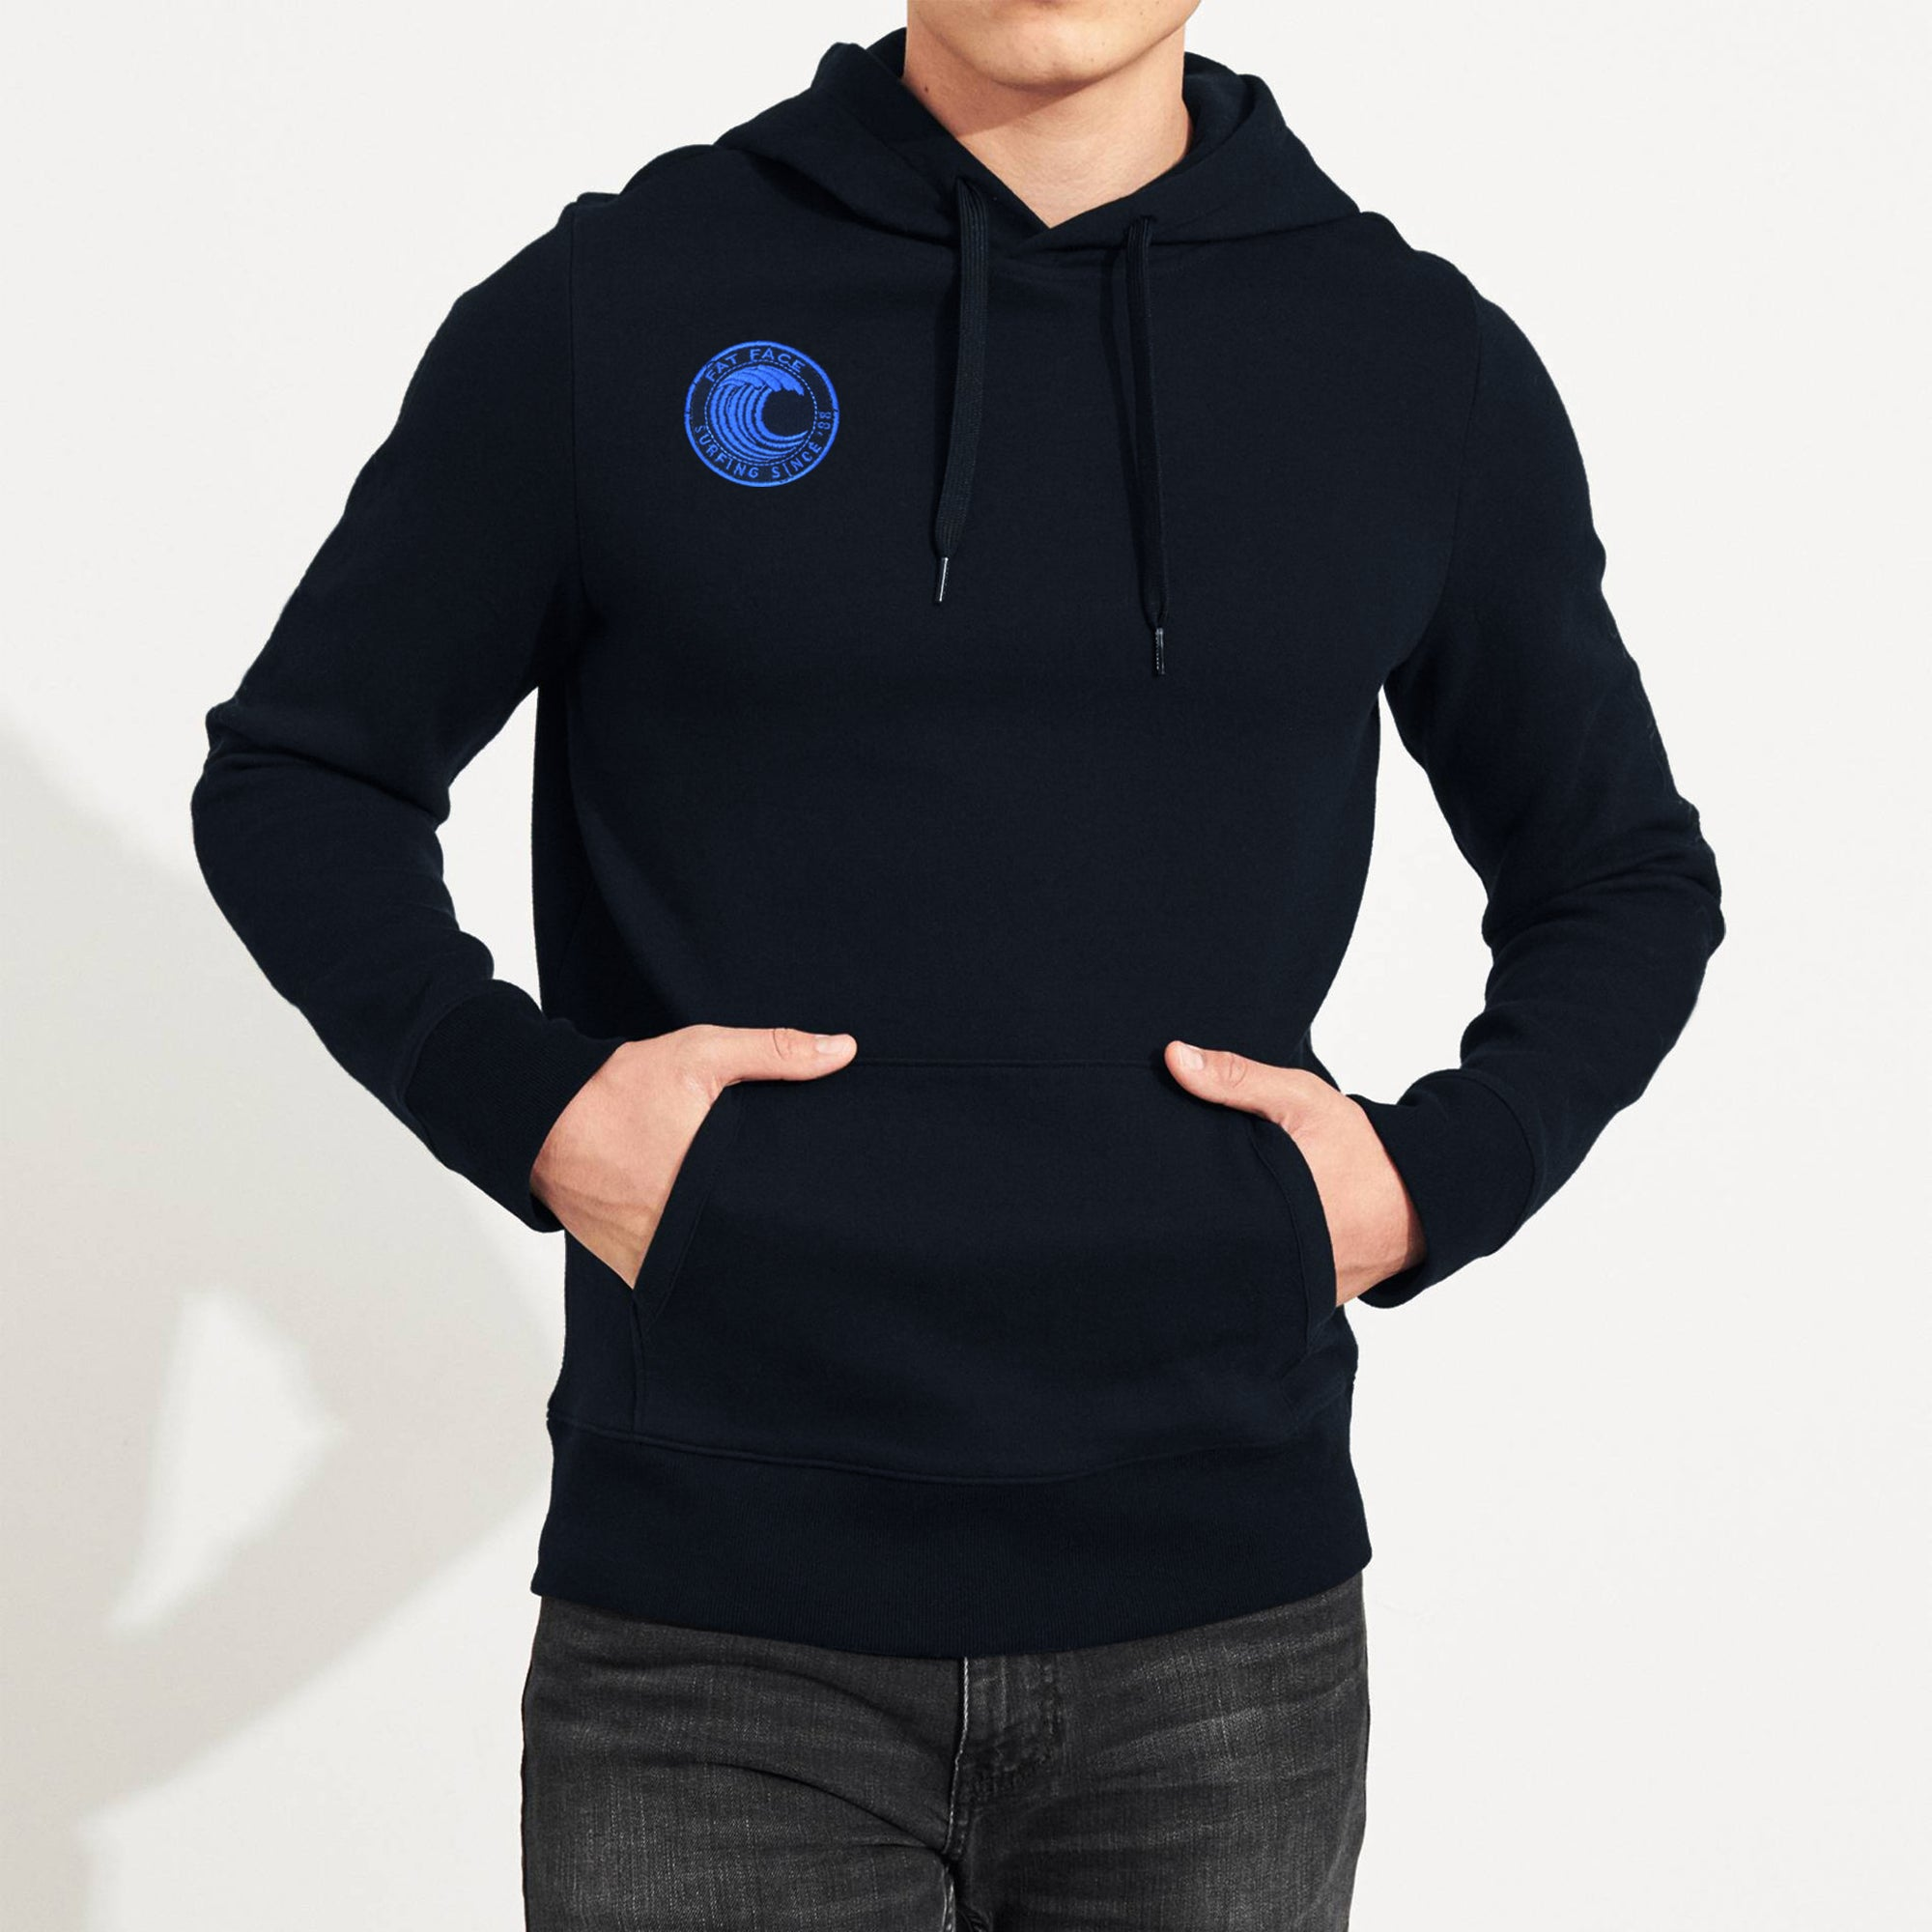 Next Fleece Pullover Hoodie For Men-Dark Navy-SP1451